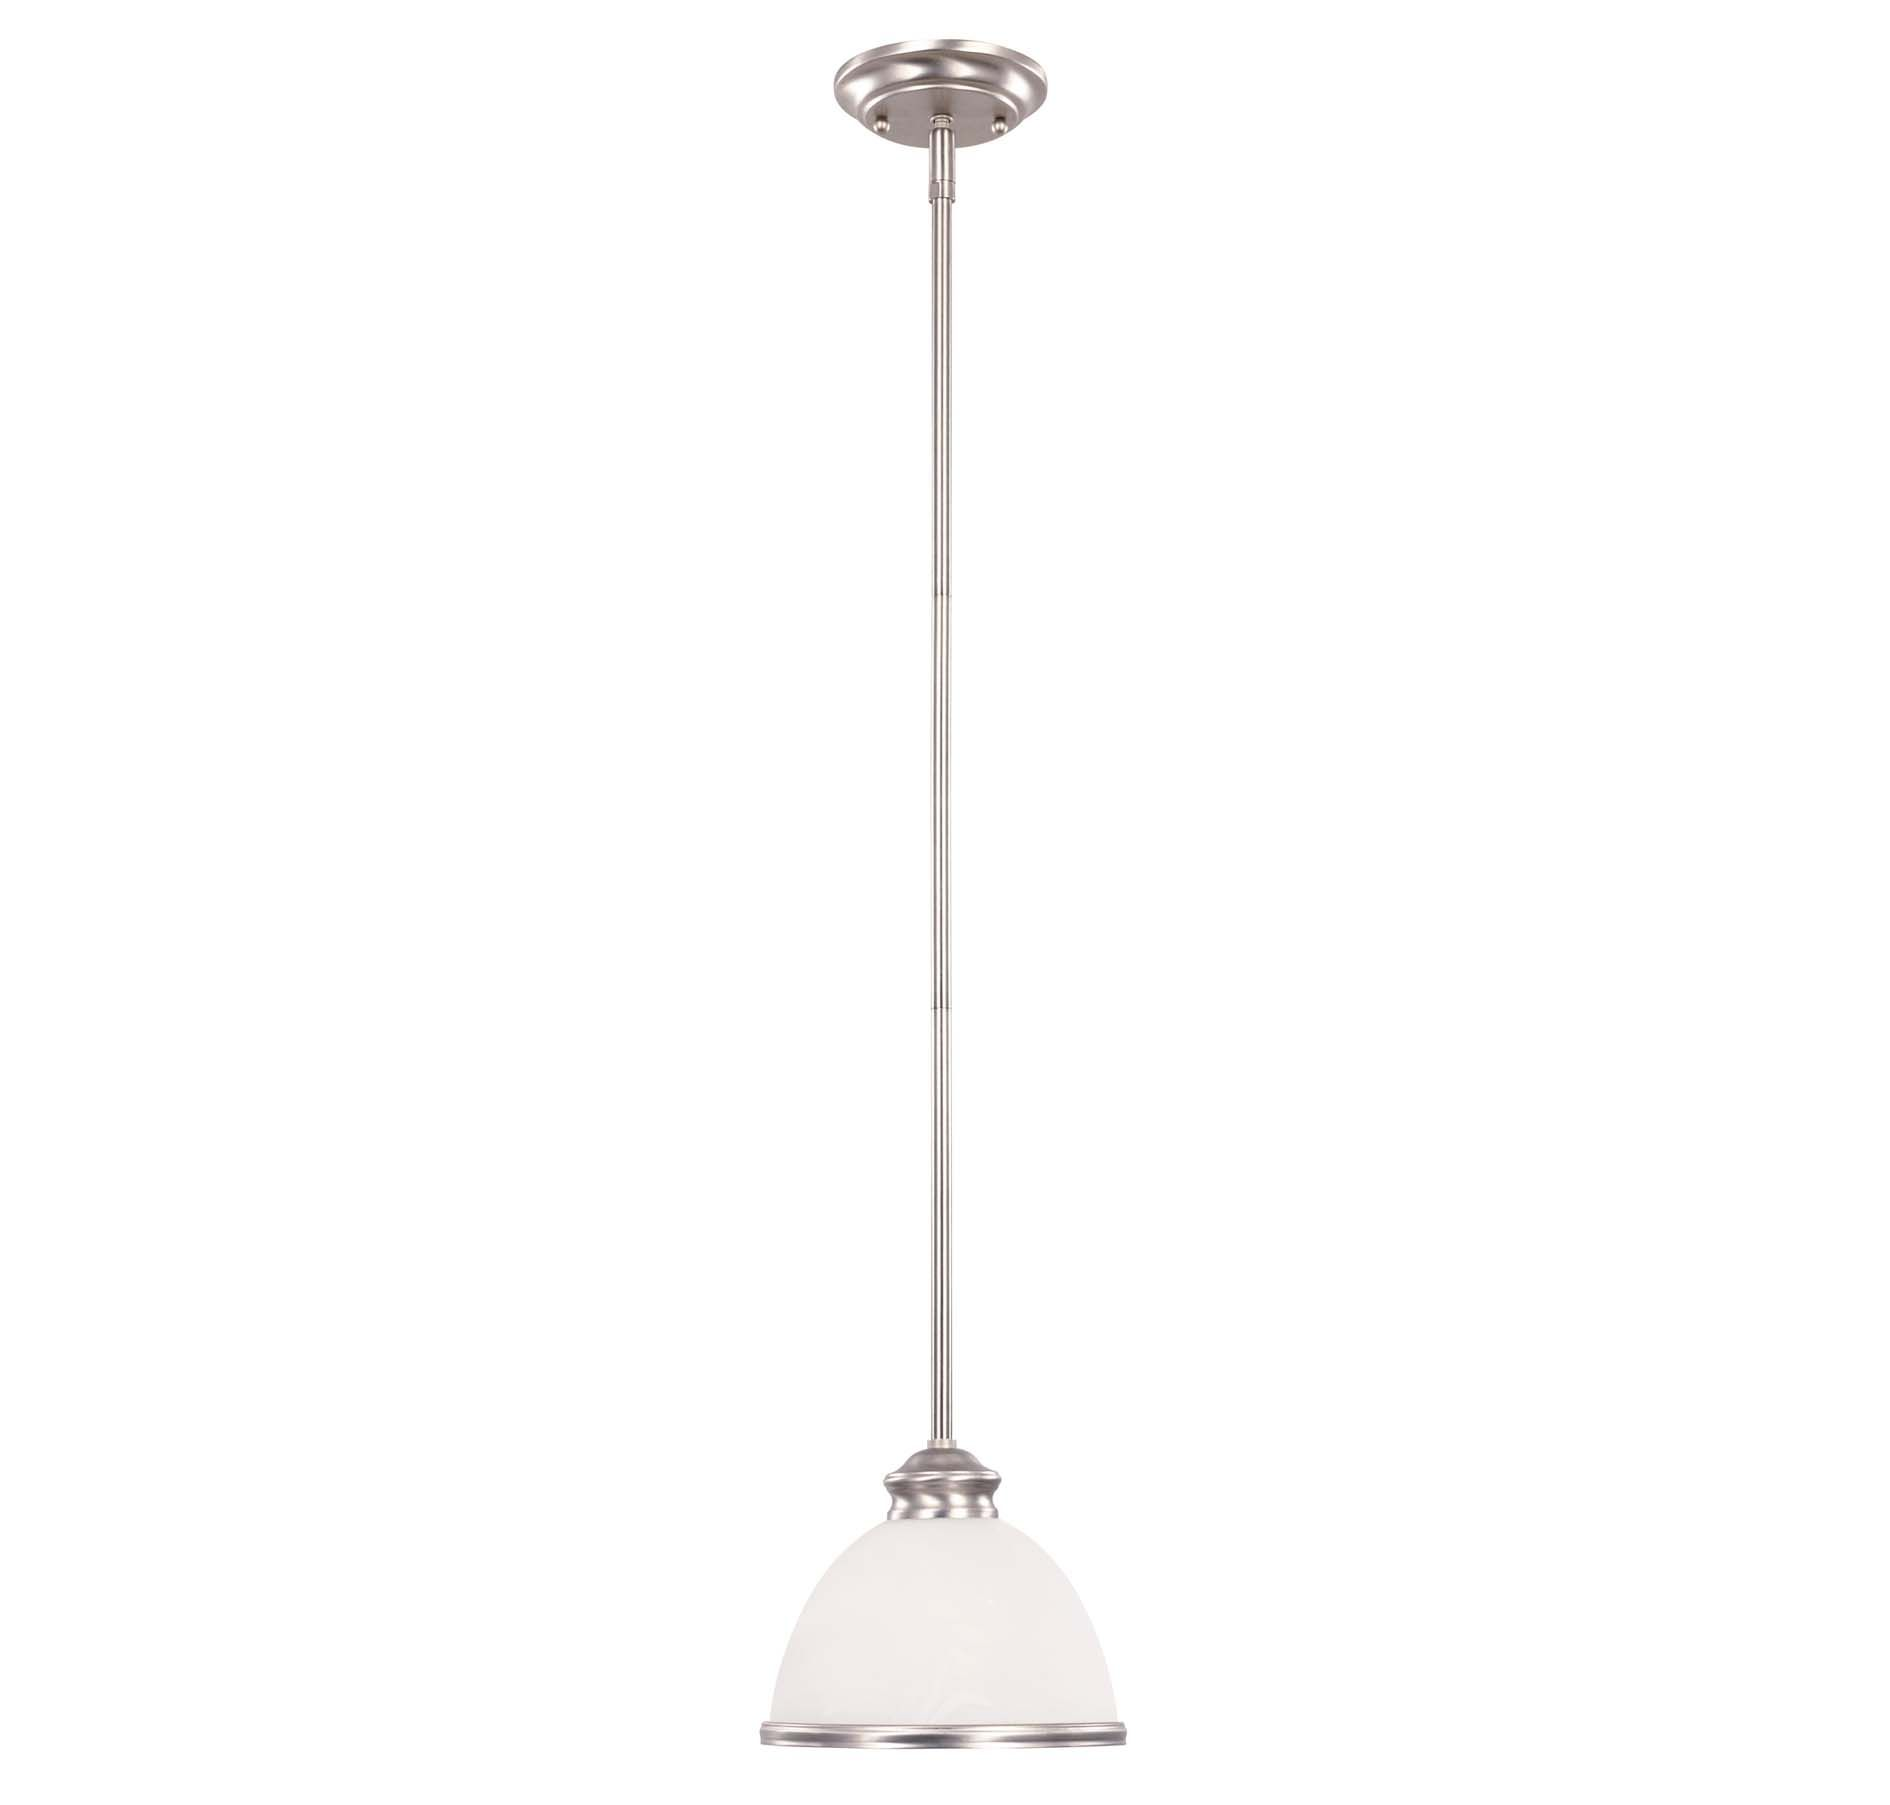 Willoughby Mini Pendant Savoy House Emerson 39 S Bath Lighting Pinterest Mini Pendant